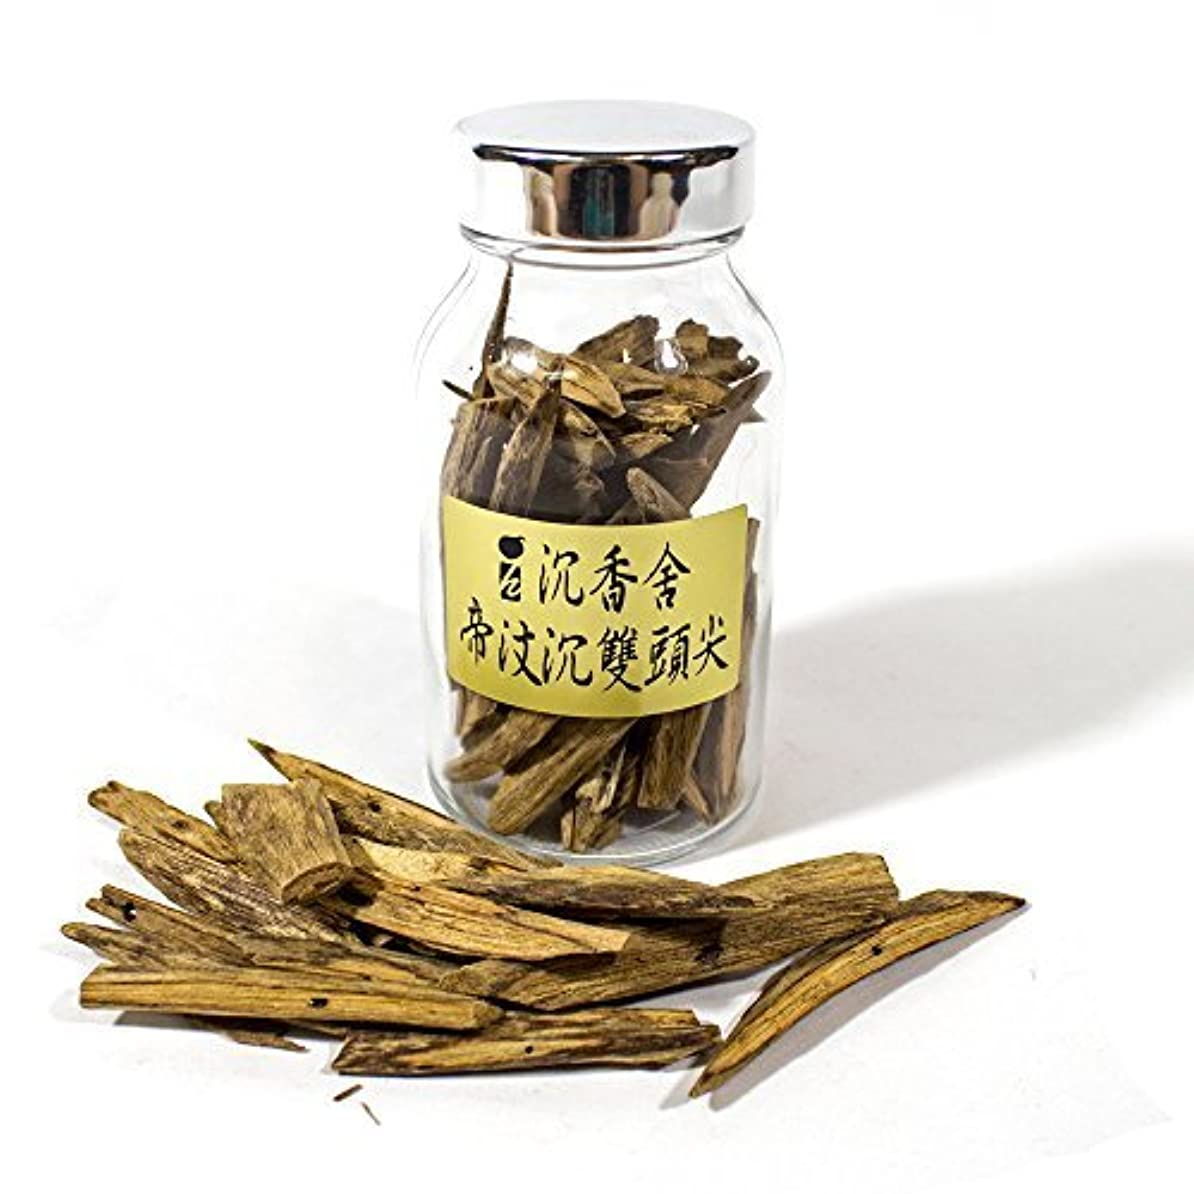 協力する仮定する別のAgarwood Aloeswood Chip Scrap - TiMor Island 20g Collection Grade by IncenseHouse - Raw Material [並行輸入品]